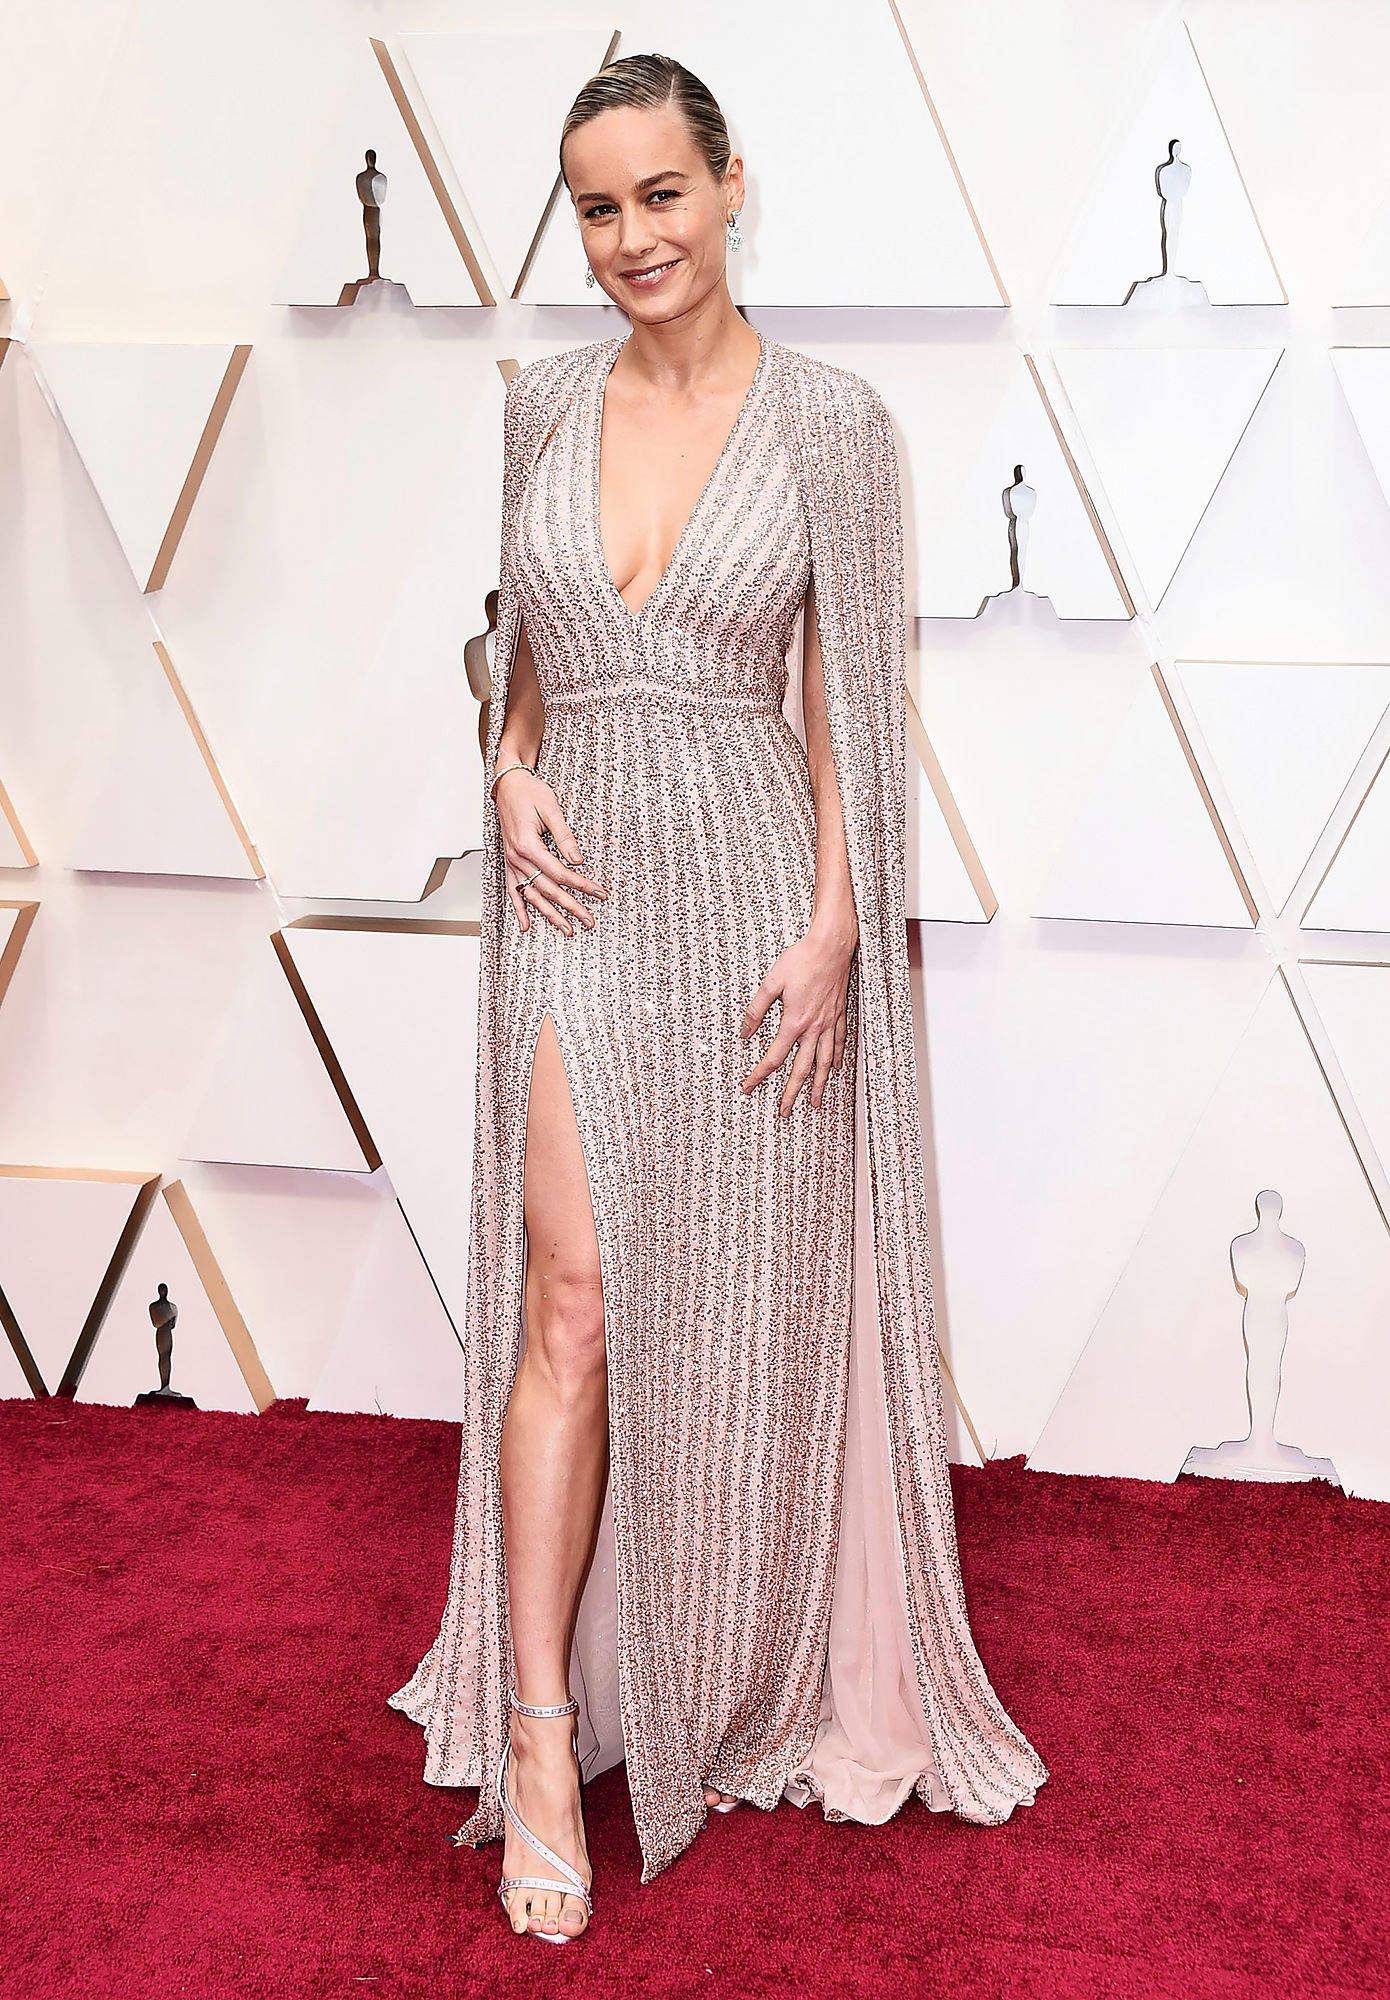 Top 5 Best Dressed Stars at the 2020 Oscars